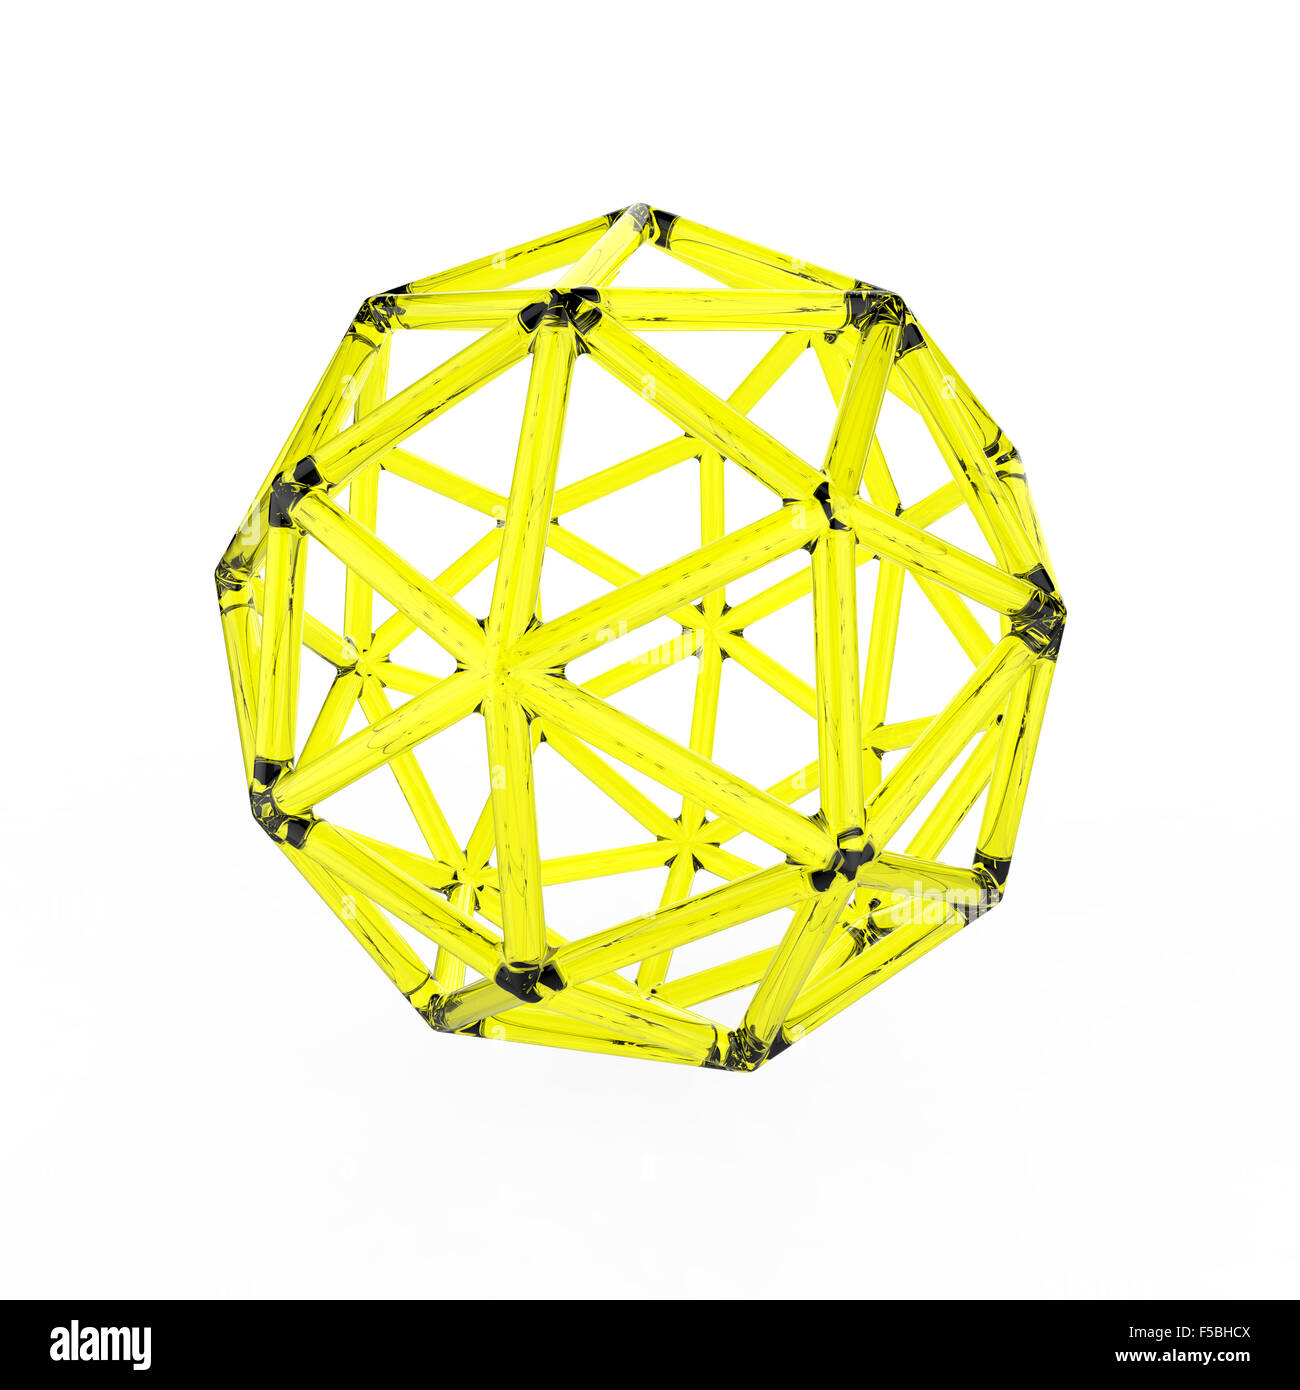 3d yellow plastic glass pentakis dodecahedron with transparent frame on white background - Stock Image